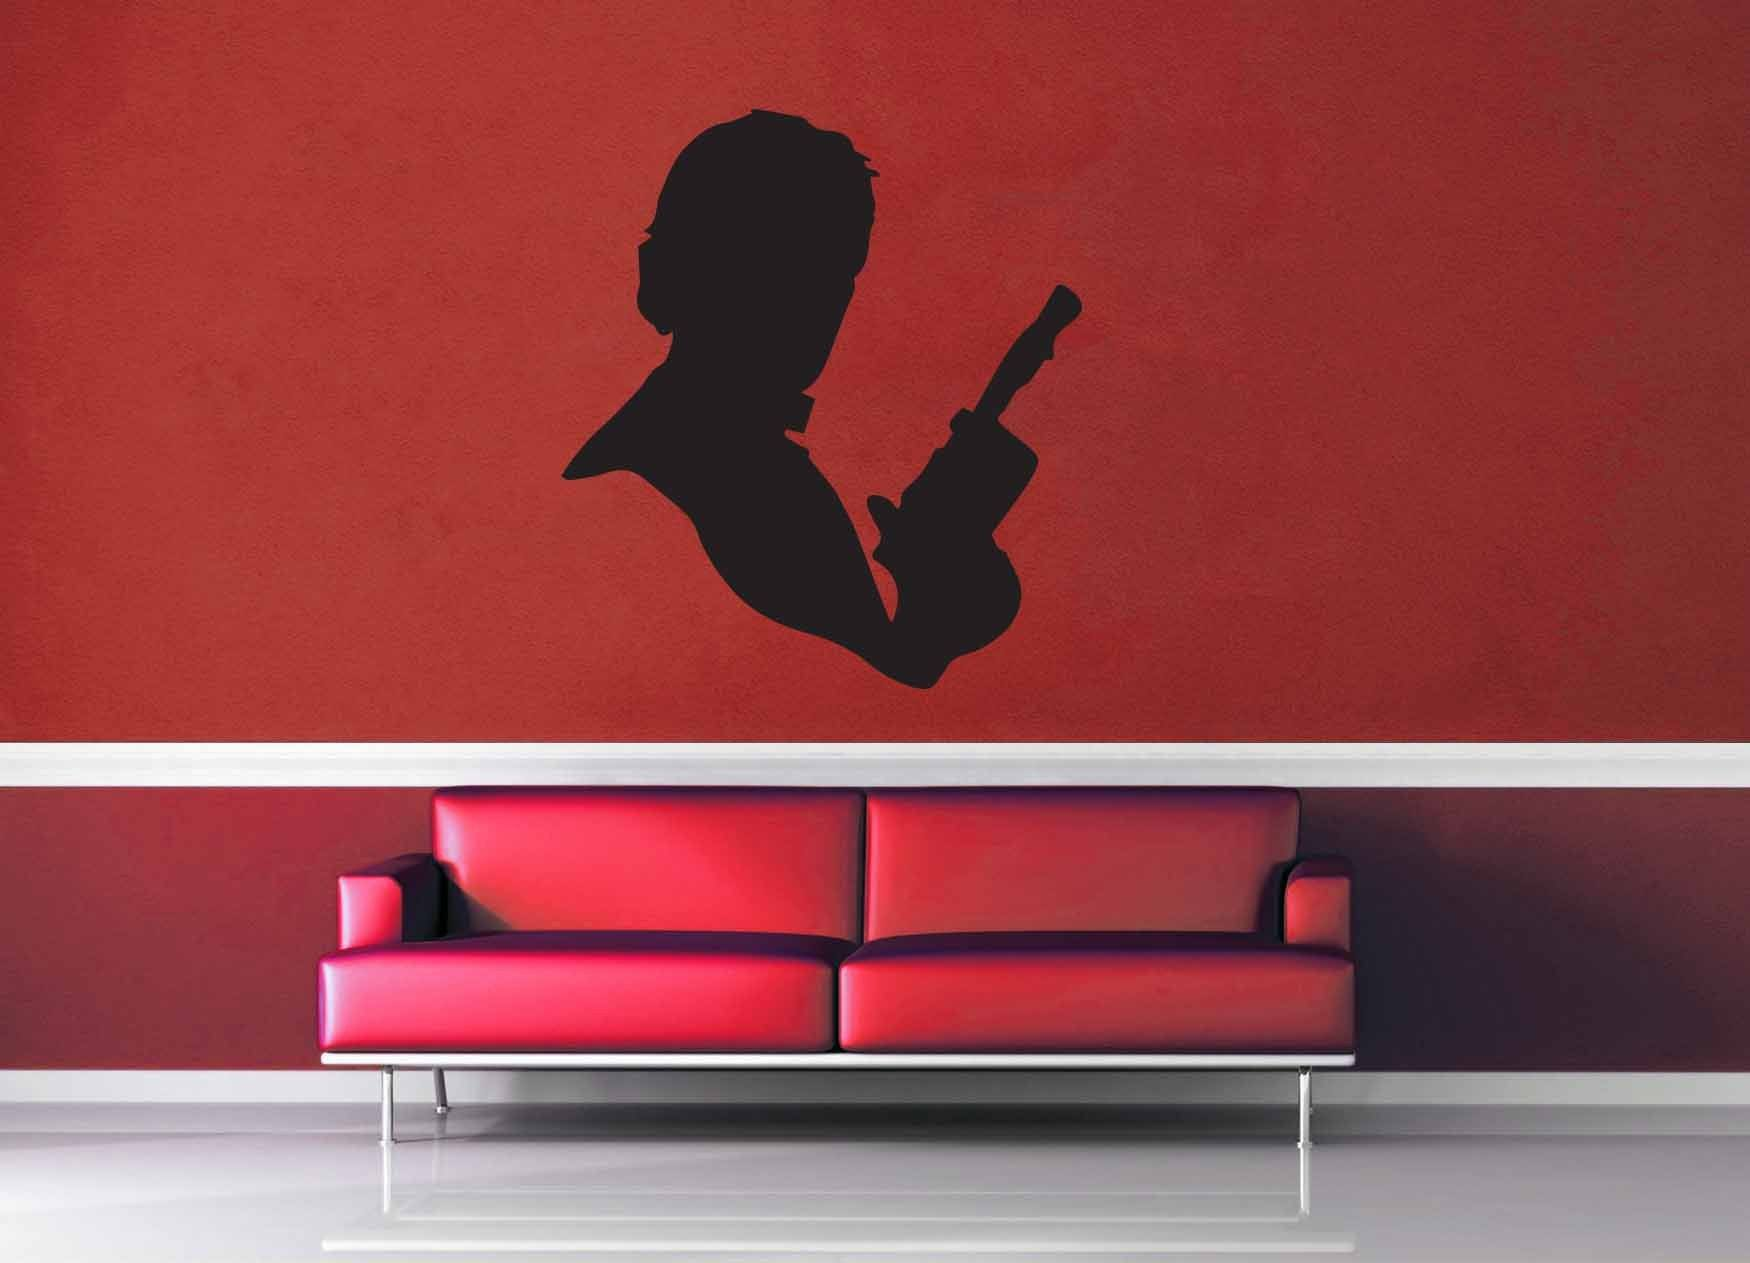 Han Solo Silhouette - Star Wars - Wall Decal - No 2 & Han Solo Silhouette - Star Wars - Wall Decal - No 2 u2013 geekerymade